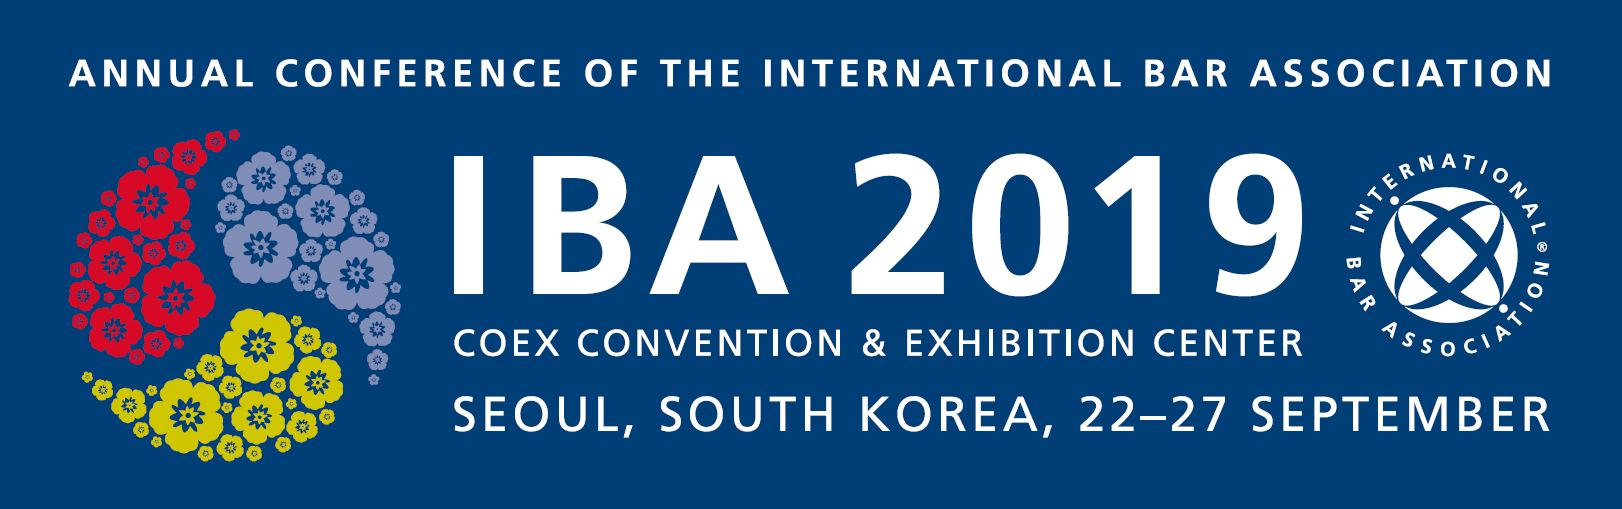 IBA Annual Conference Seoul 2019, 22-27 September